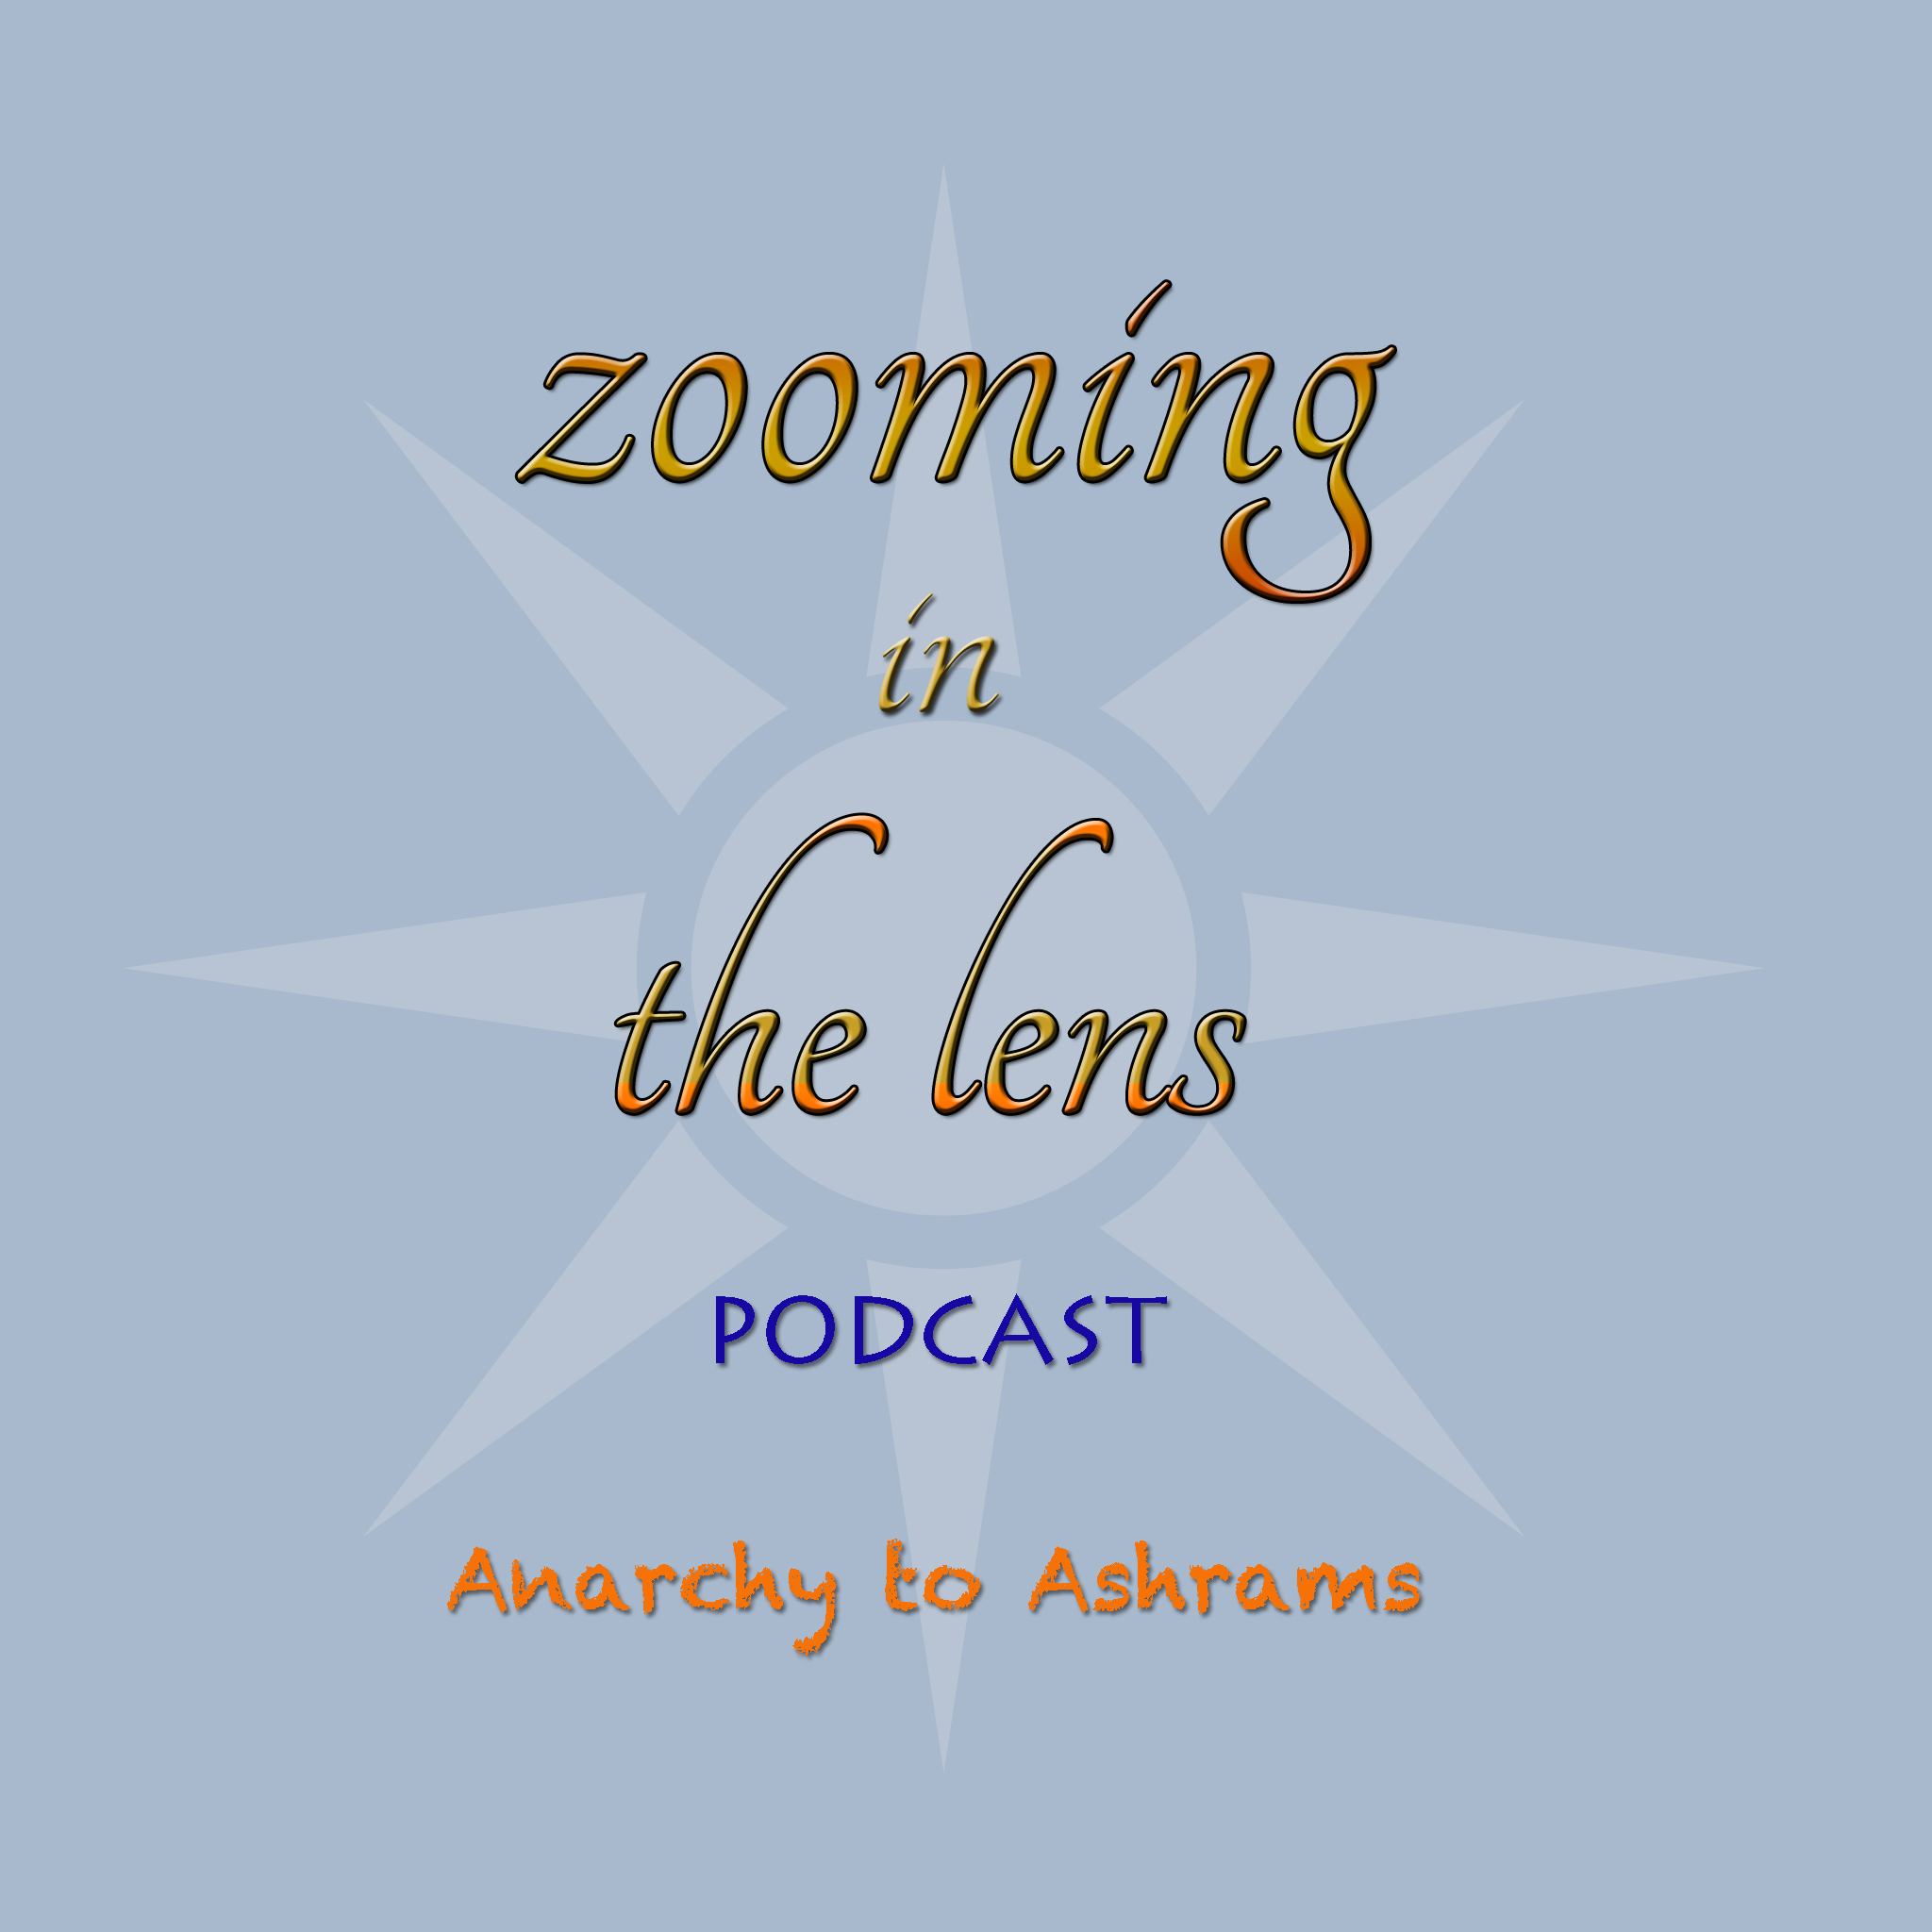 SUBSCRIBE HERE! https://itunes.apple.com/us/podcast/zooming-in-the-lens/id974484840?mt=2